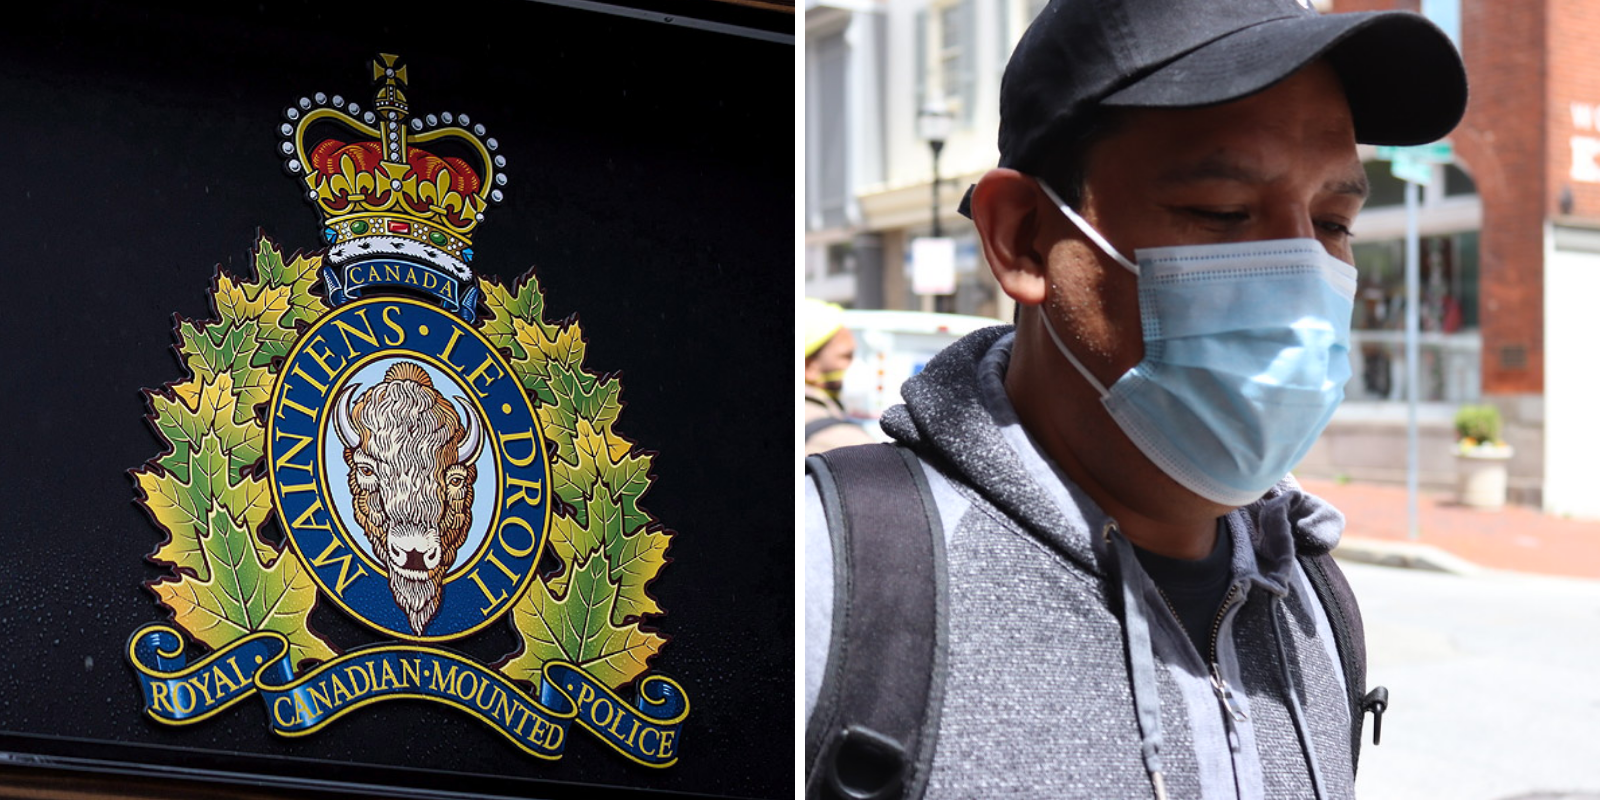 RCMP laid over 9,500 social distancing-related charges in four months, says StatsCan